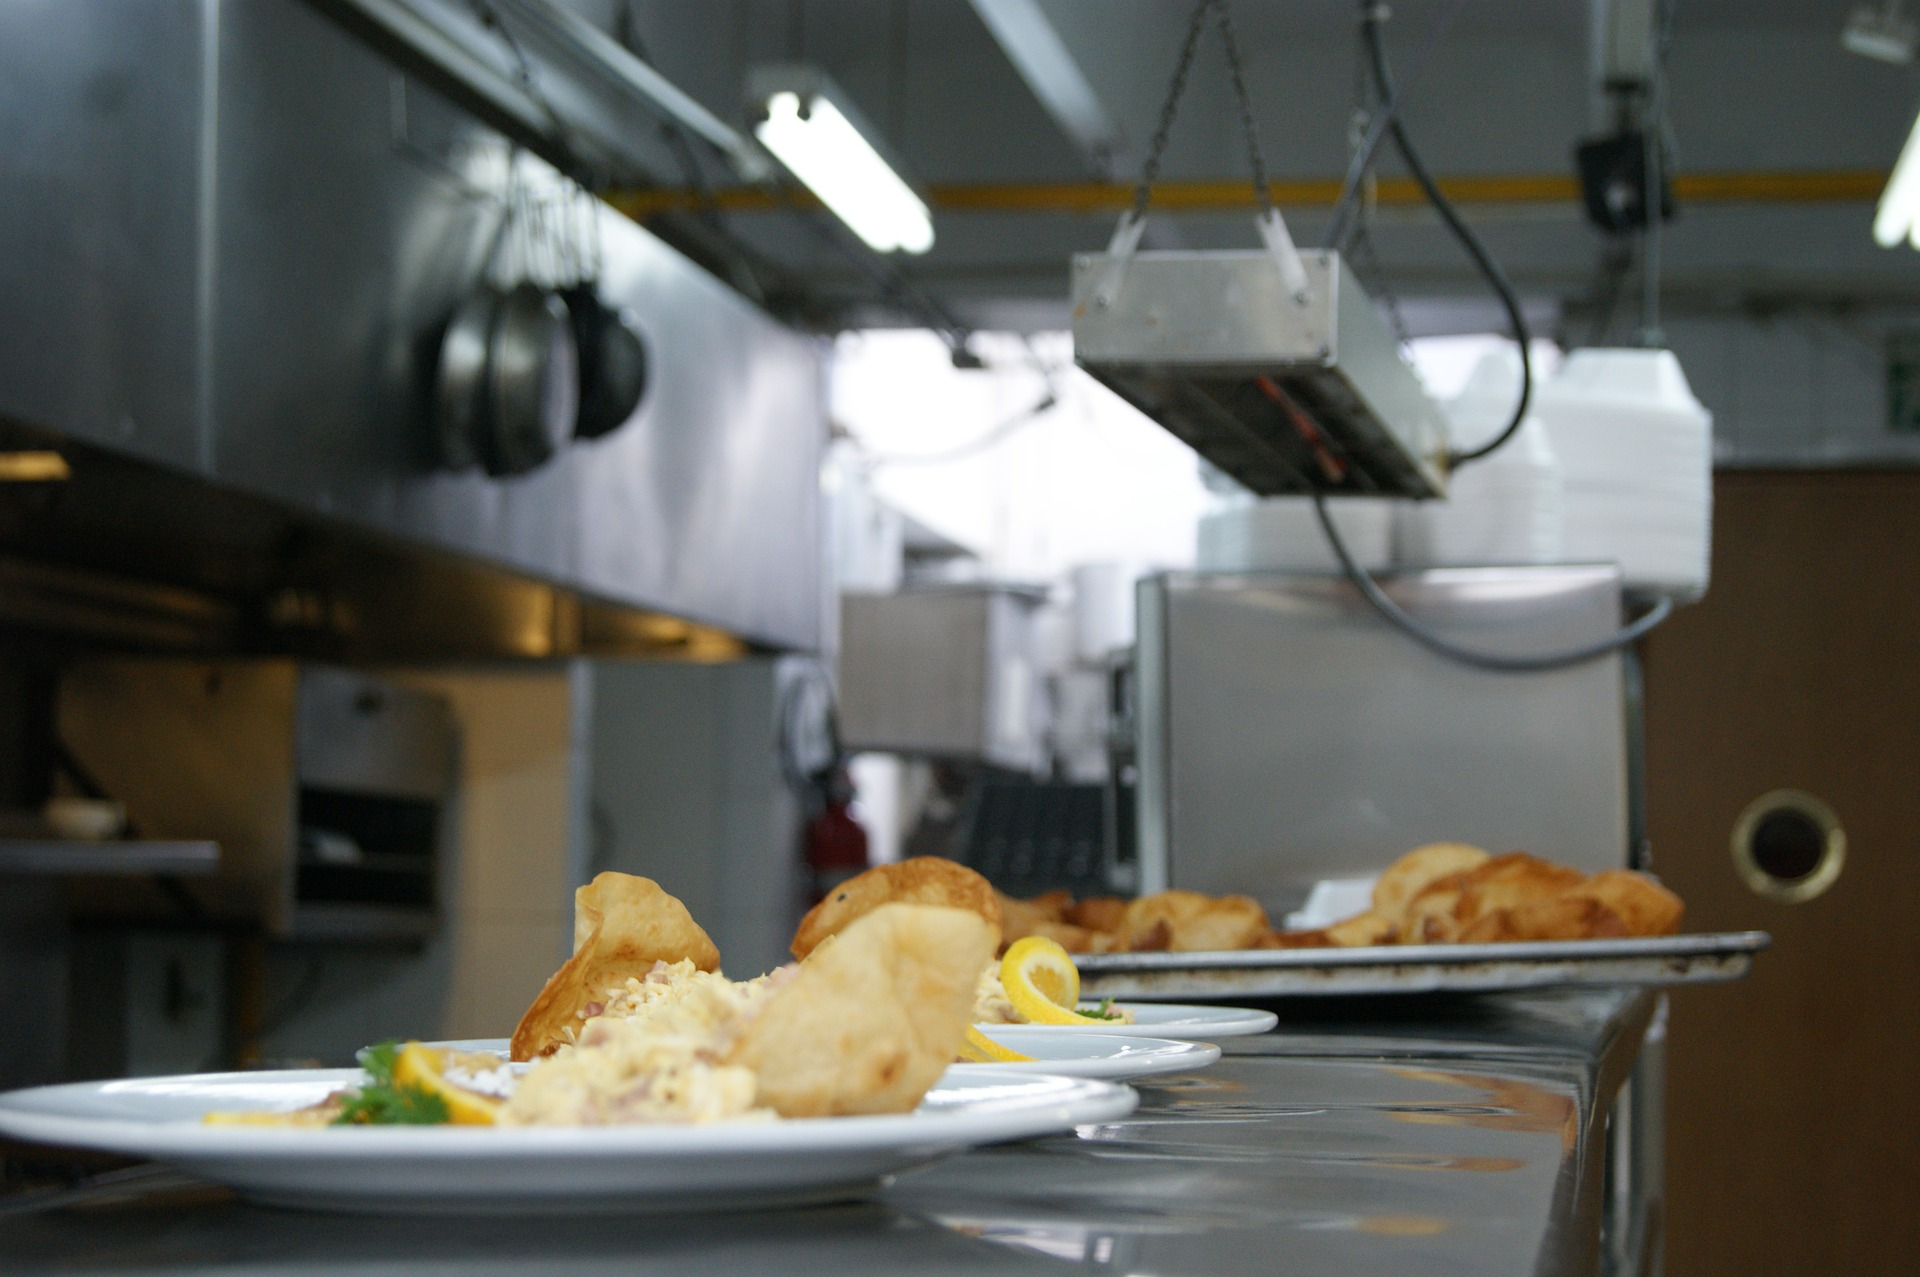 Prepared meals sitting on a counter under a food warmer in the kitchen of a restaurant.